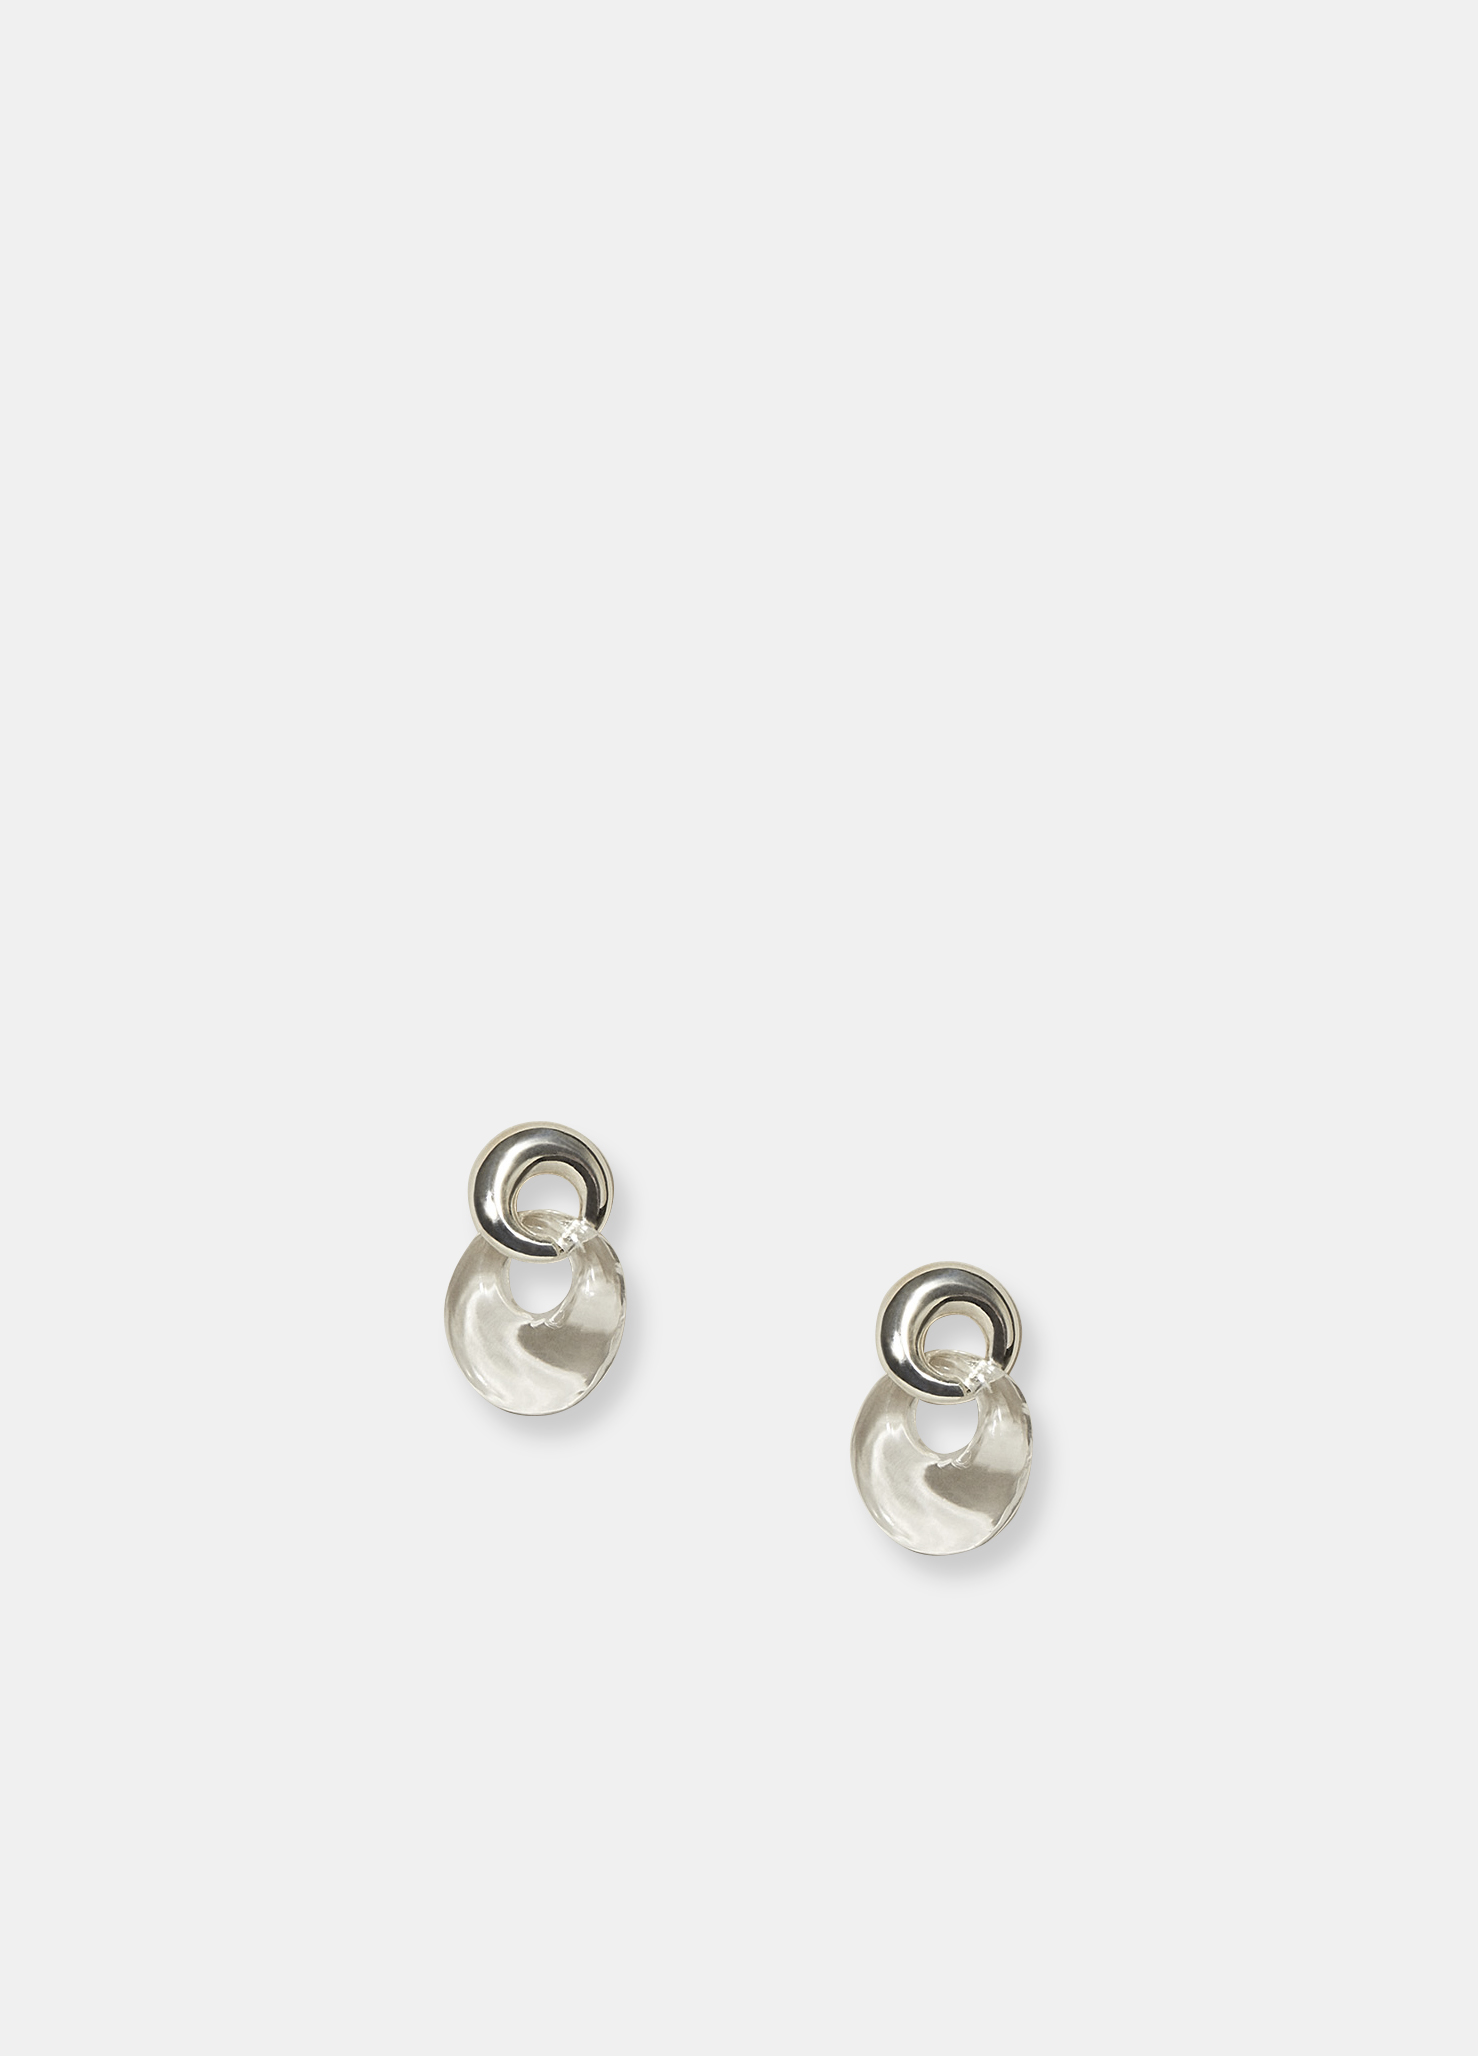 J. Hannah | Duet Earrings